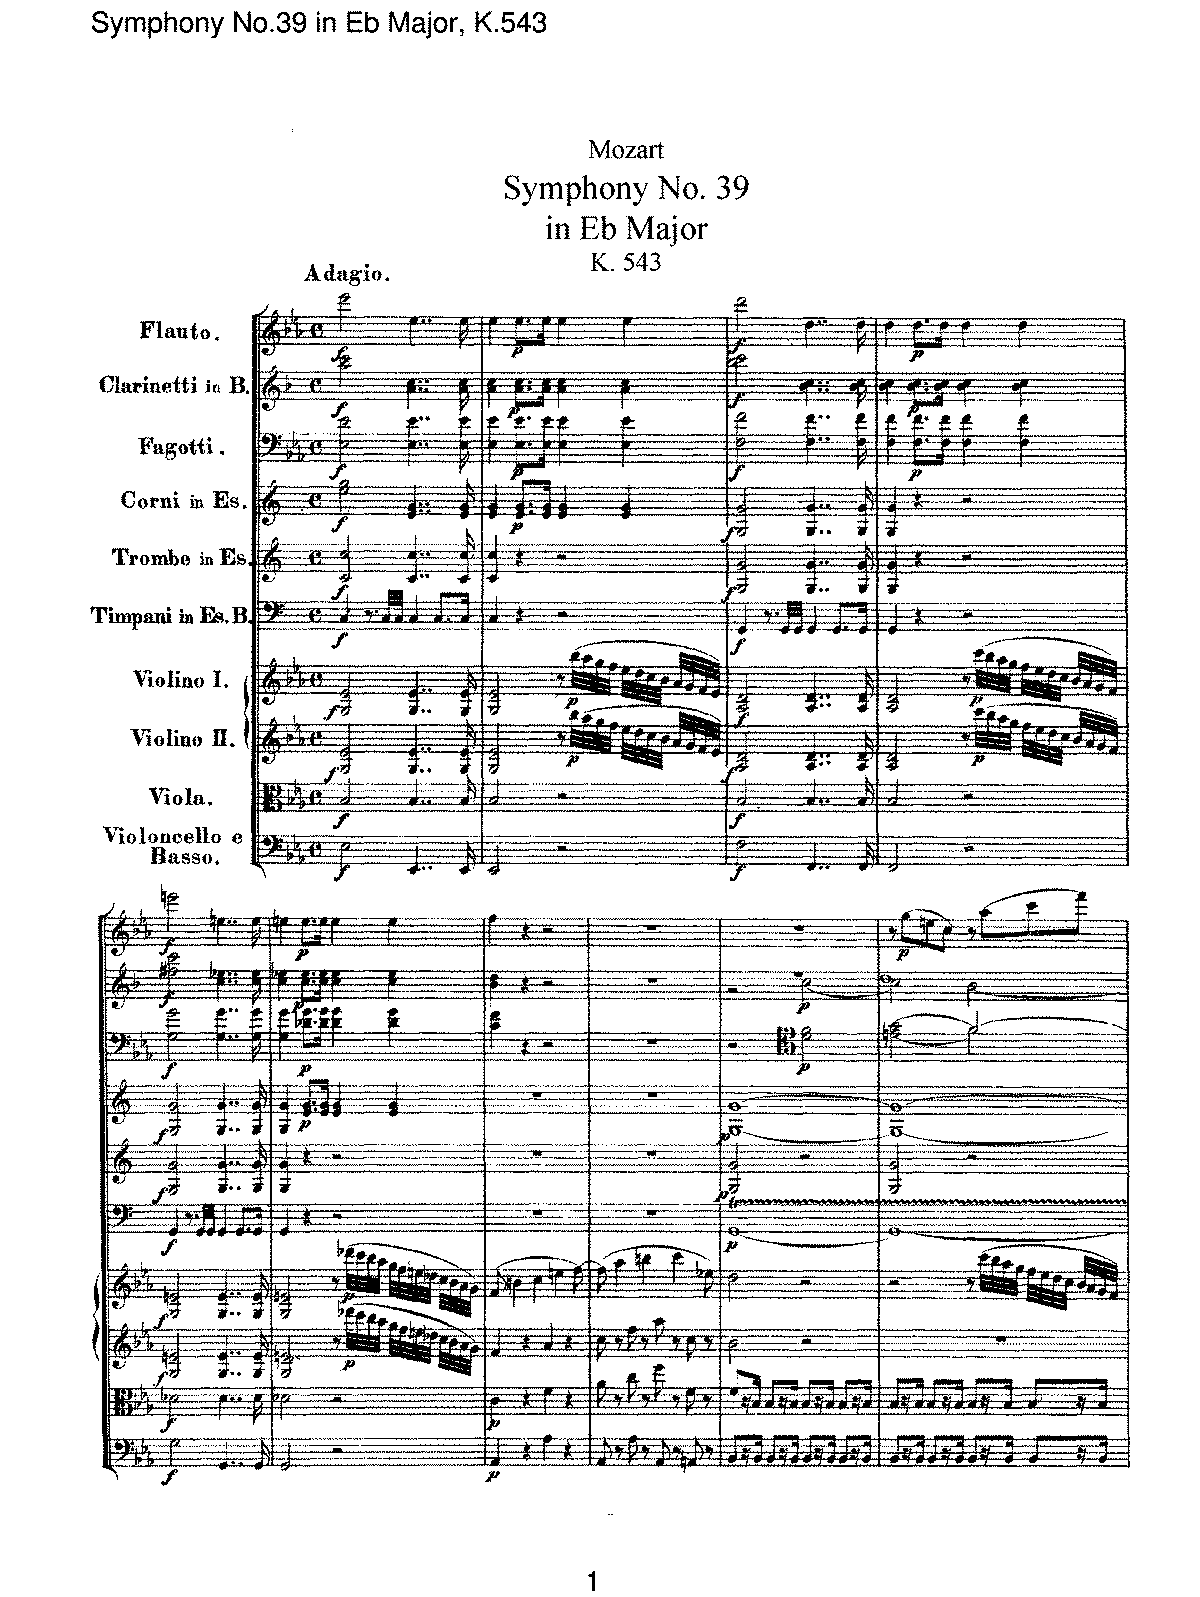 Mozart - Symphony No 39 in Eb Major, K.543.pdf